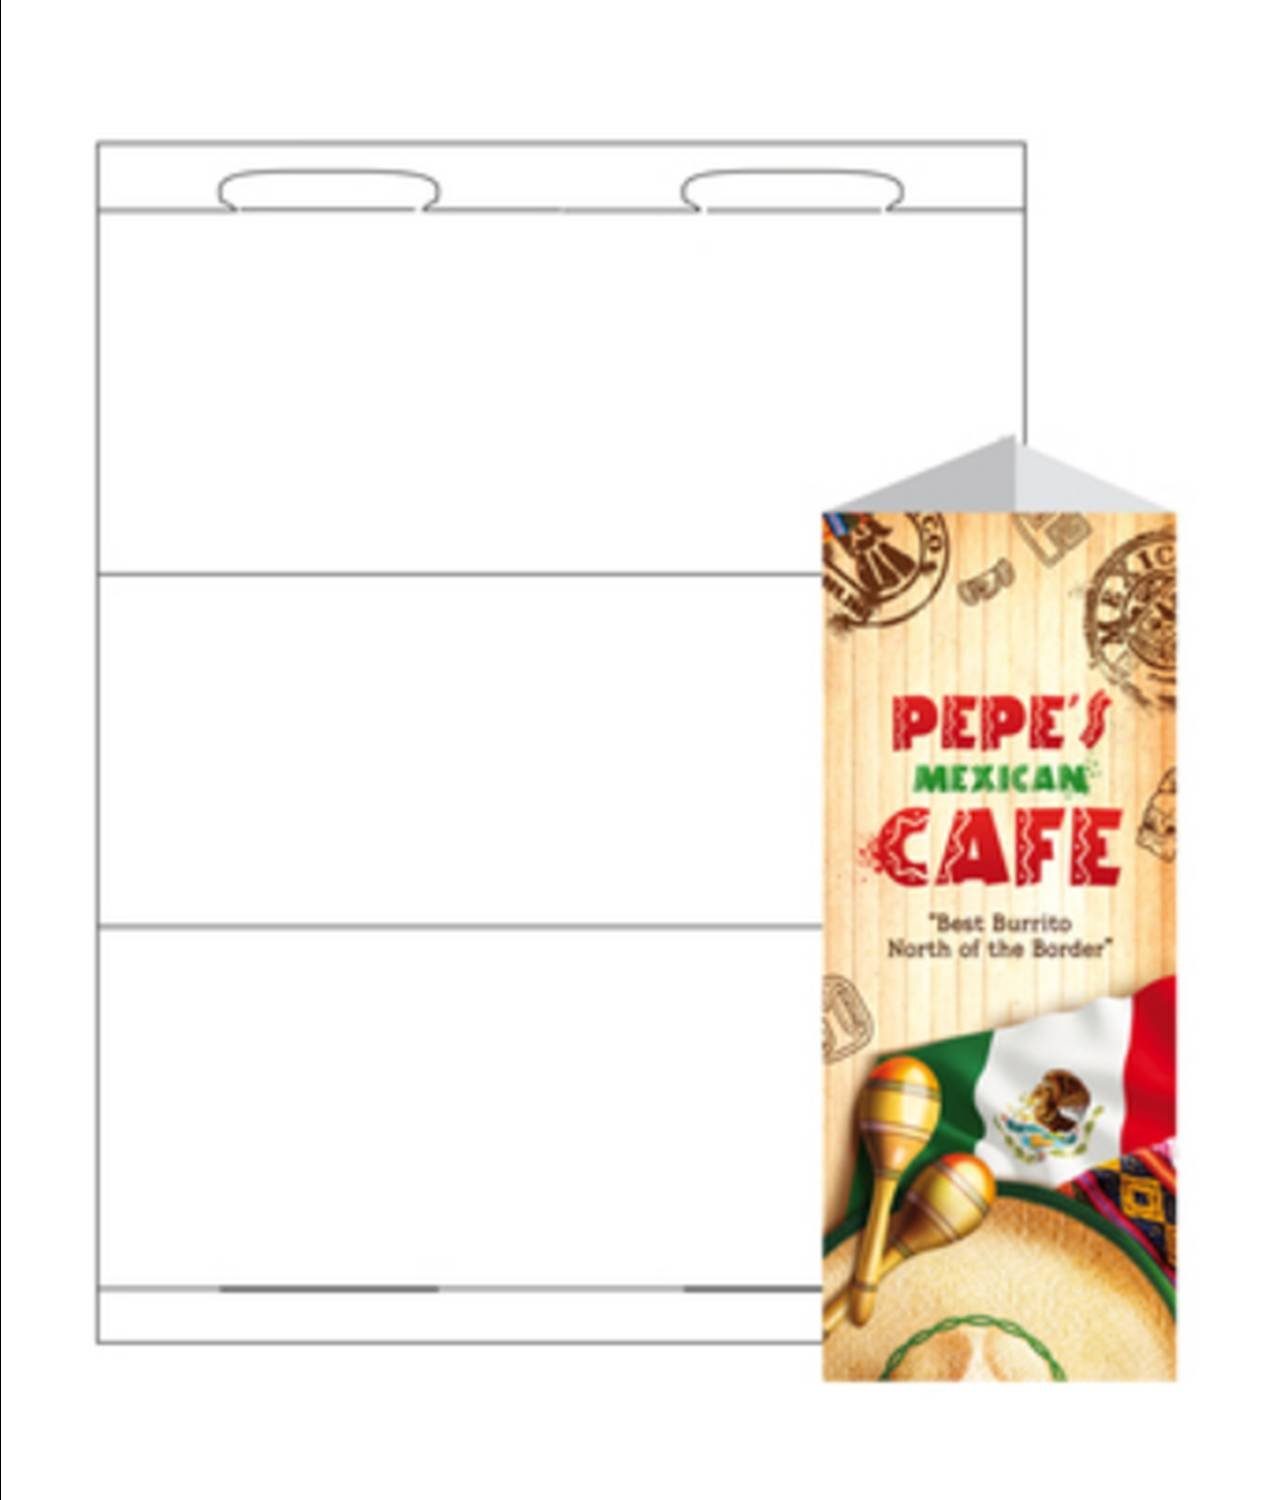 Print-Ready Table Tent, Tri-Fold (No-Tear Waterproof), 3-3/8'' x 8-1/2'' (folded), 1-UP on 8-1/2'' x 11'' White Synthetic 8-Mil Paper - 25 Sheets by Zapco (Image #2)